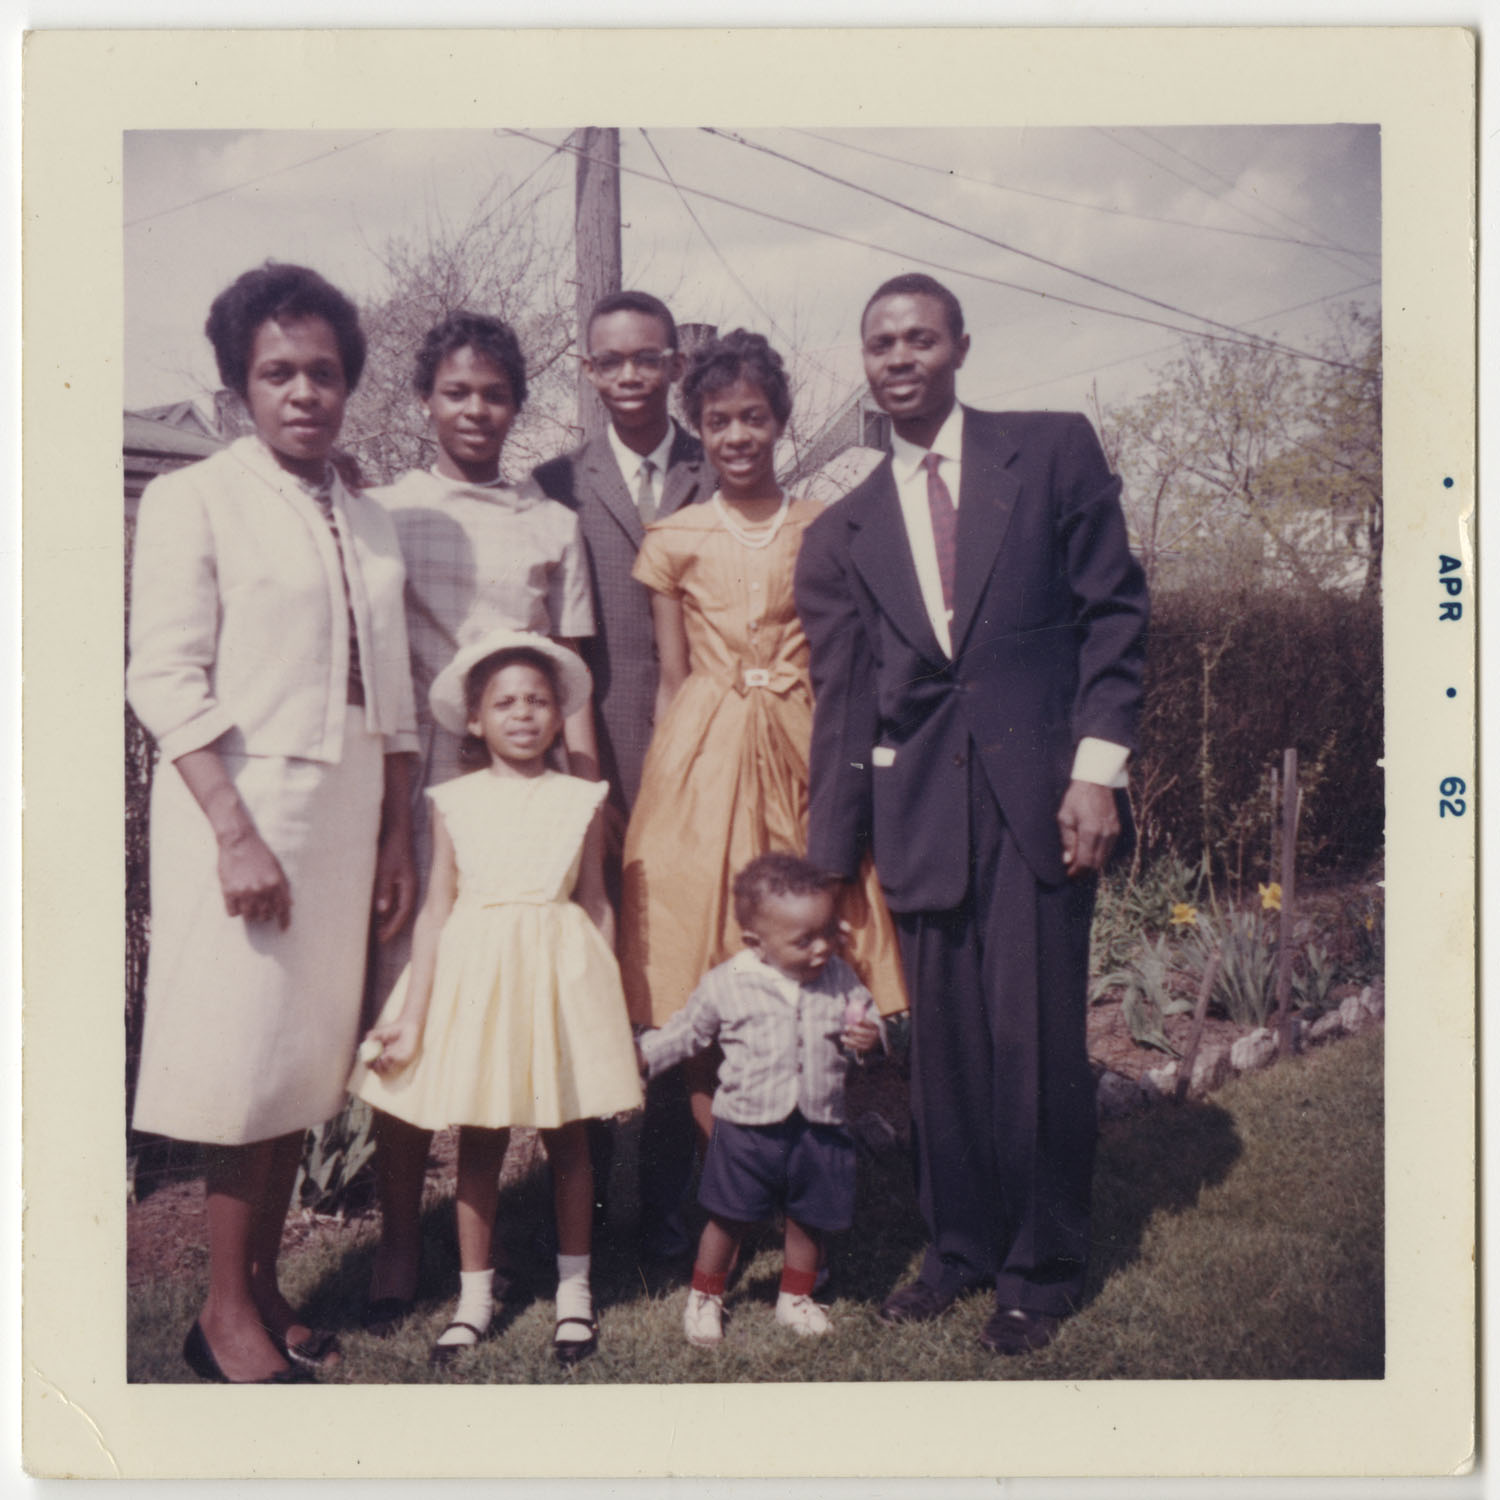 Evan Mae Sudderth and Family, April 1962